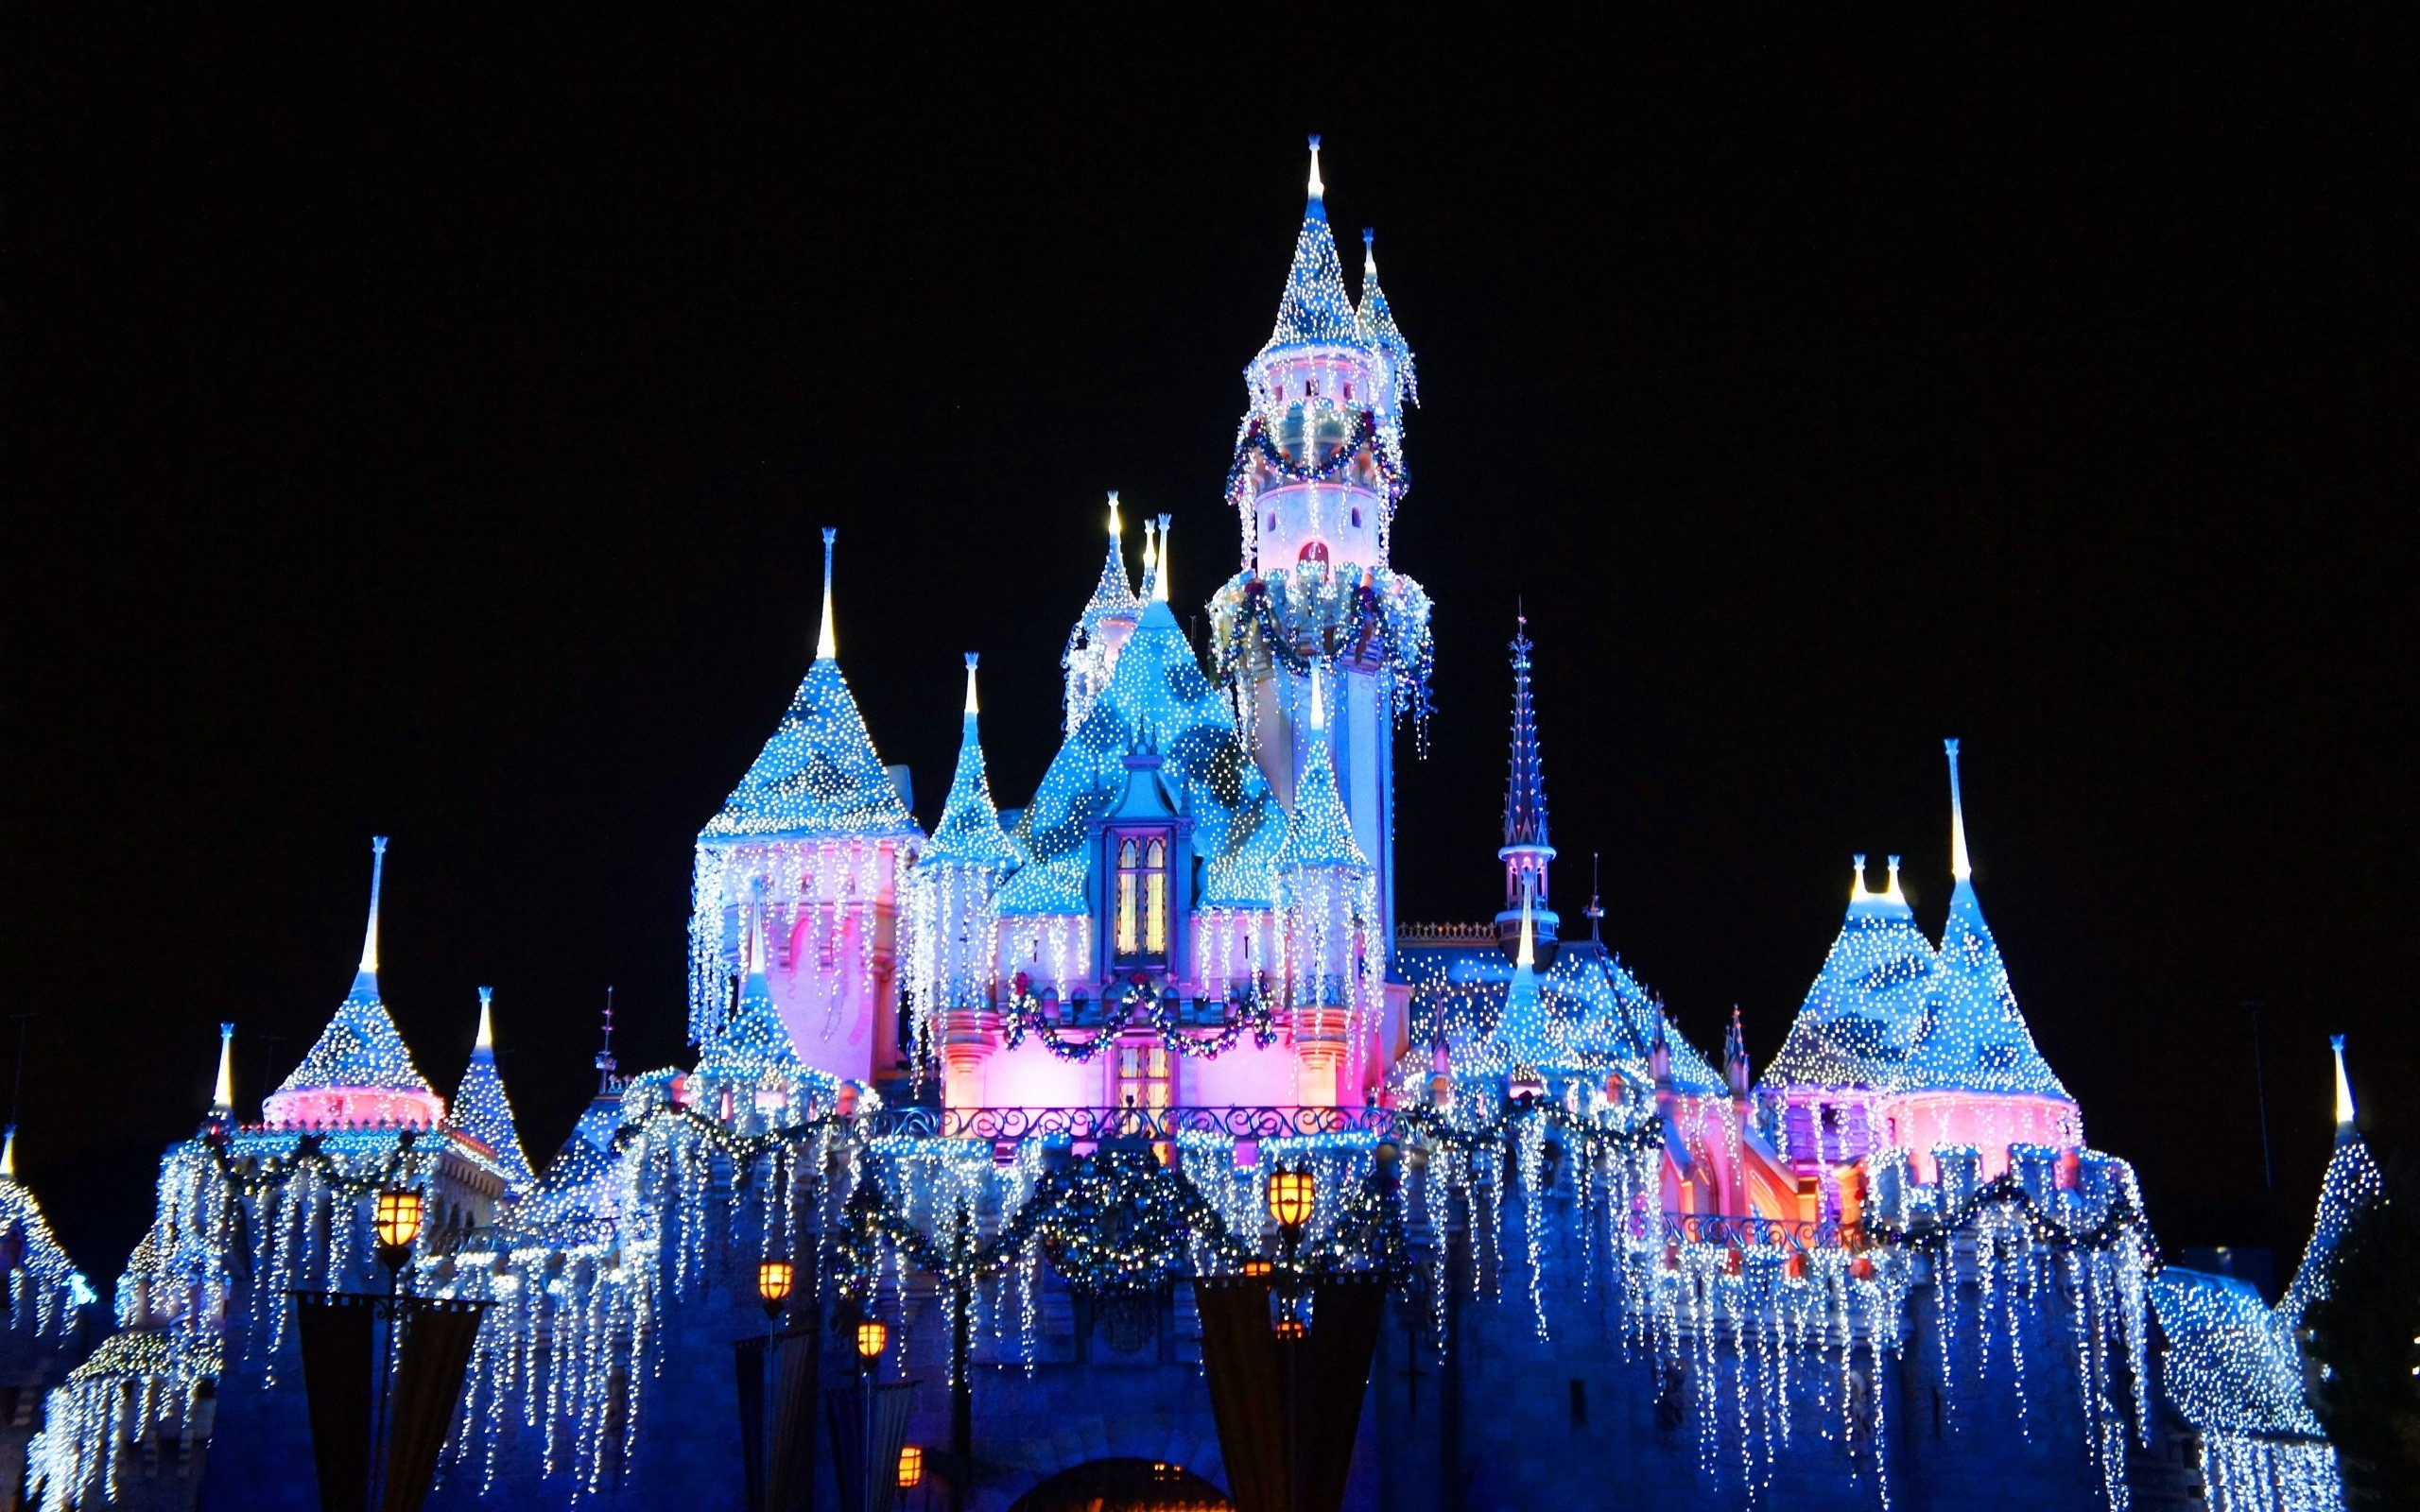 Pink and Blue Disney Castle Wallpapers Pink and Blue Disney Castle 2560x1600